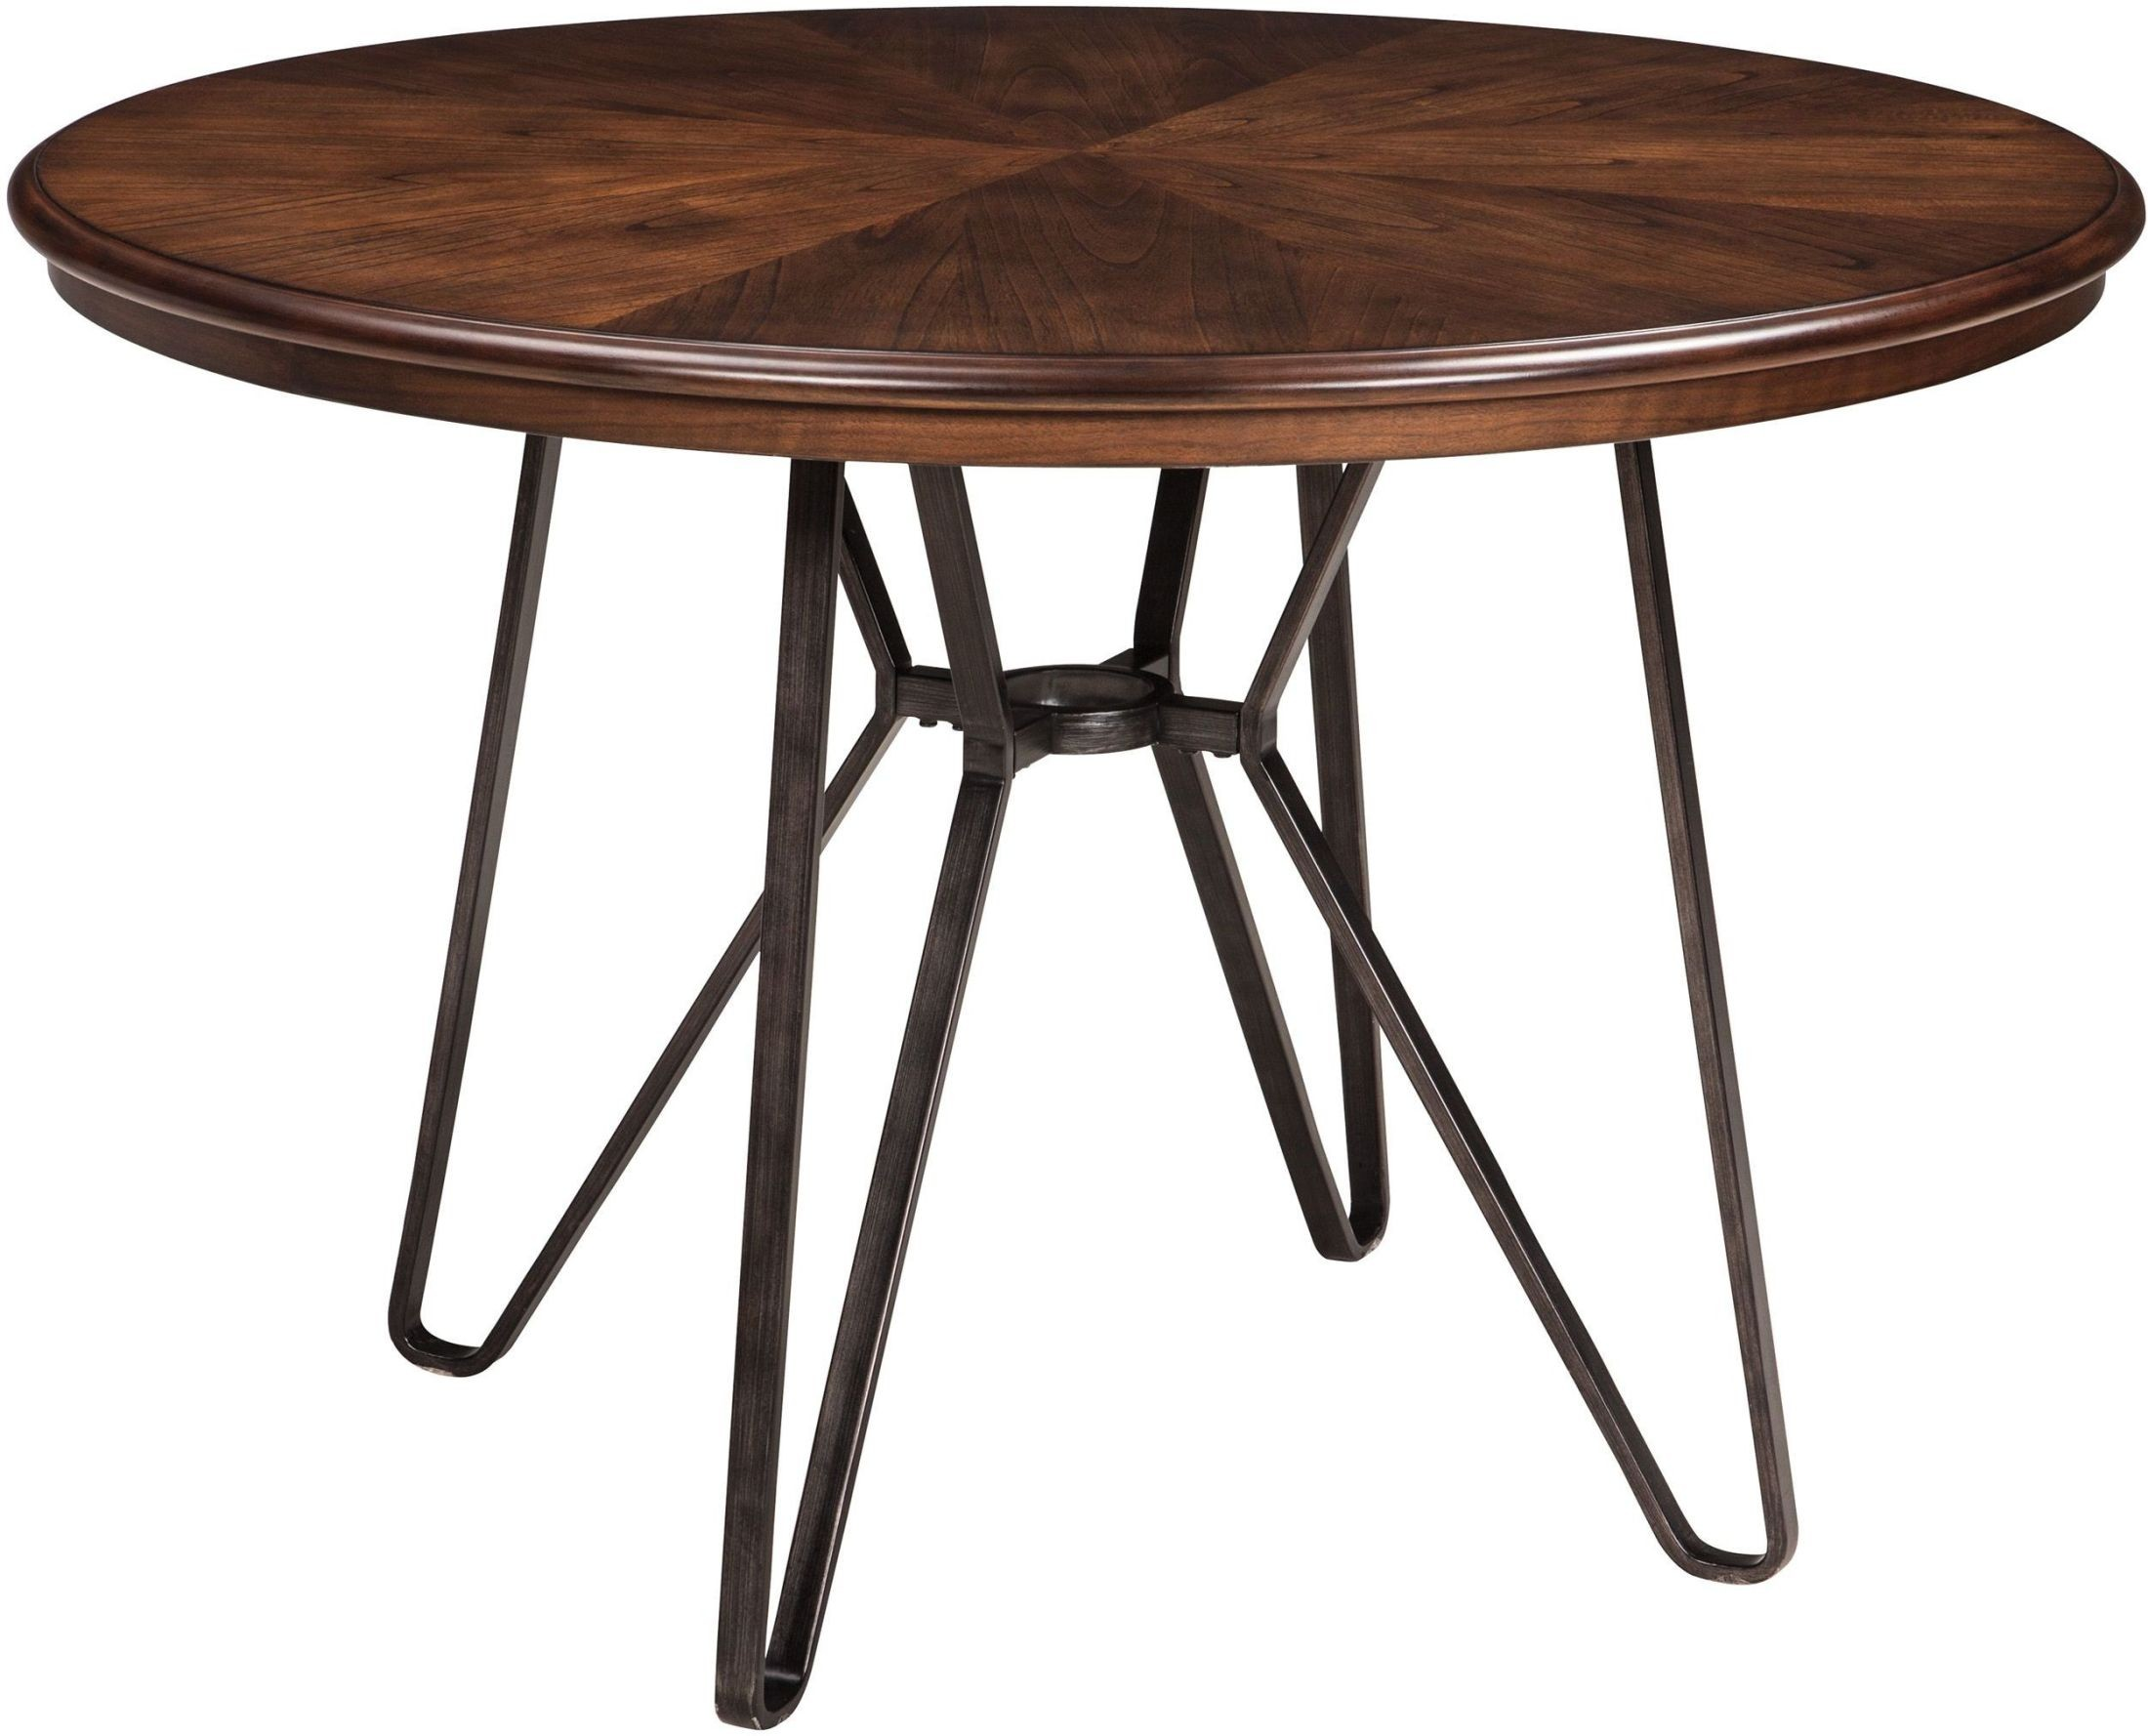 Centiar Two Tone Brown Round Dining Table from Ashley  : d372 15 sw from colemanfurniture.com size 2200 x 1778 jpeg 340kB